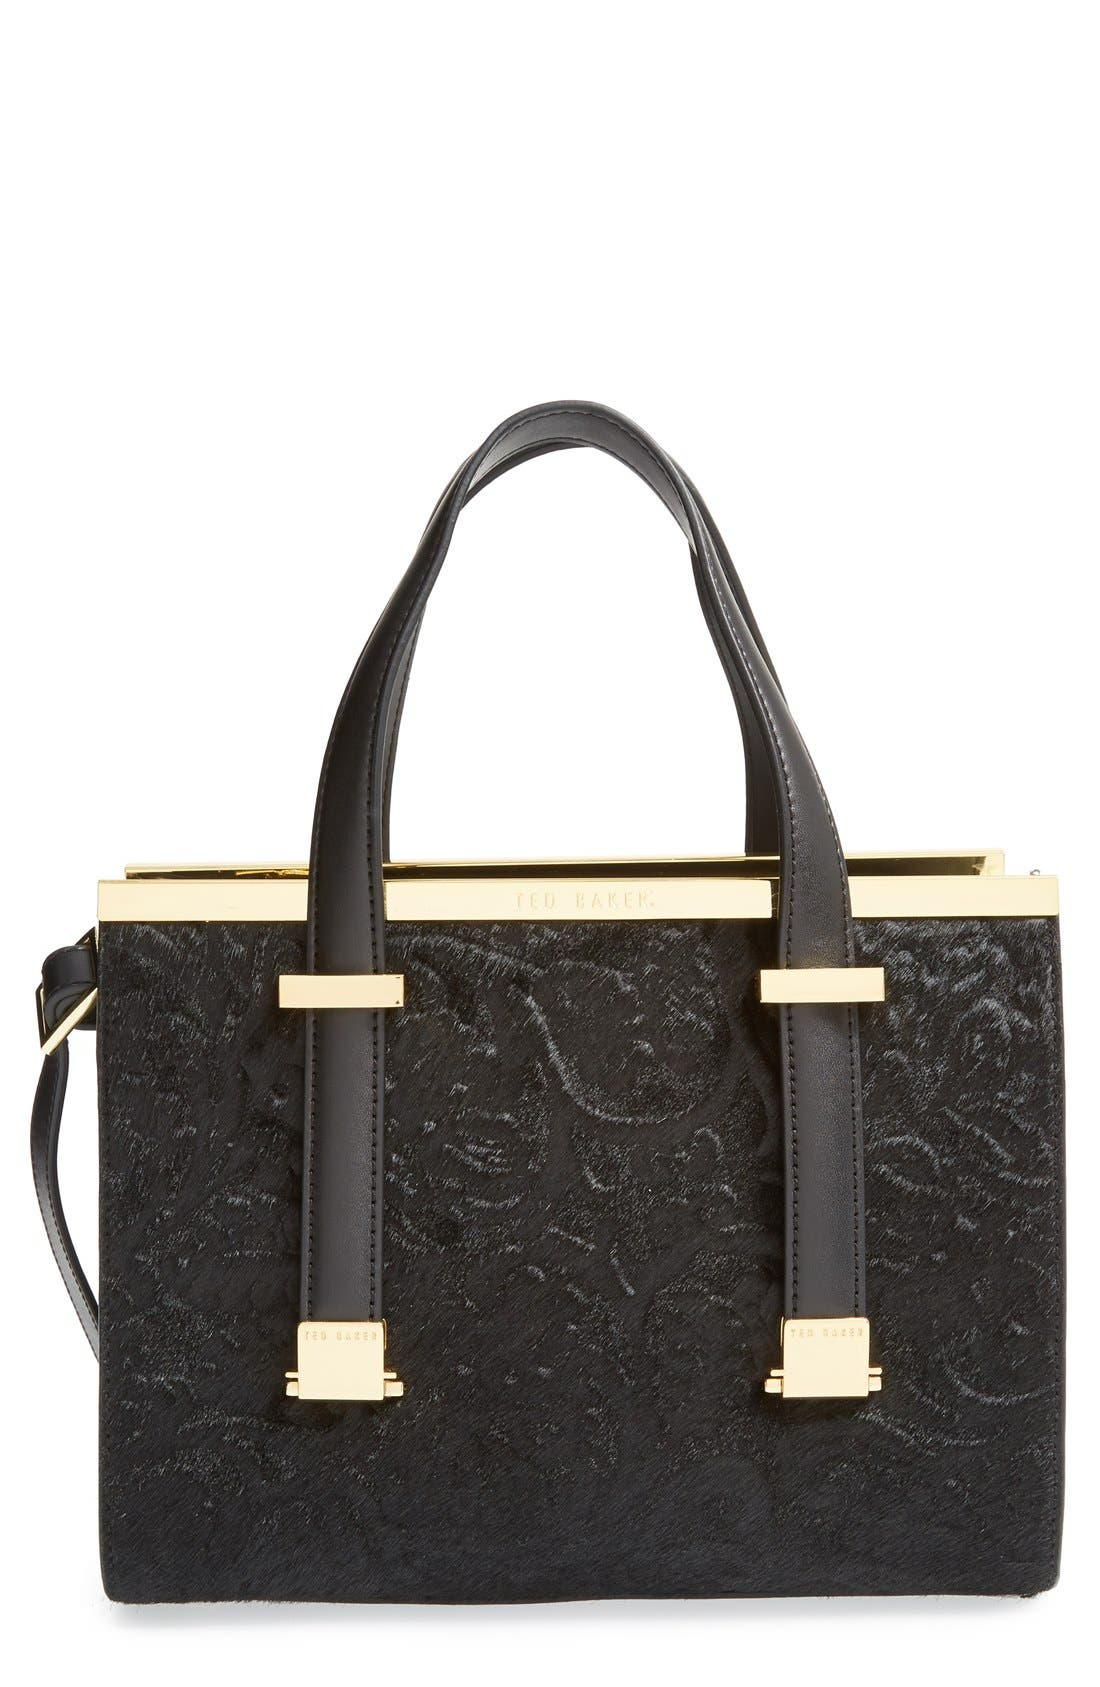 Alternate Image 1 Selected - Ted Baker London 'Minipel' Textured Metal Tote